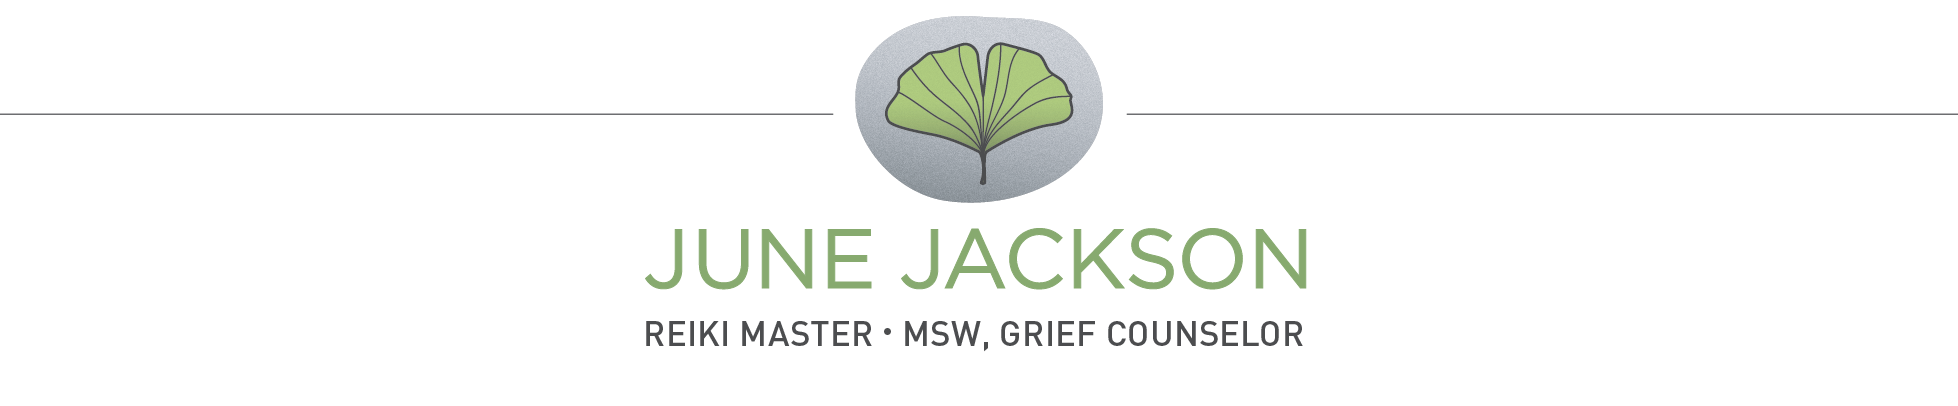 JUNEJACKSON_TYPE-80px.png